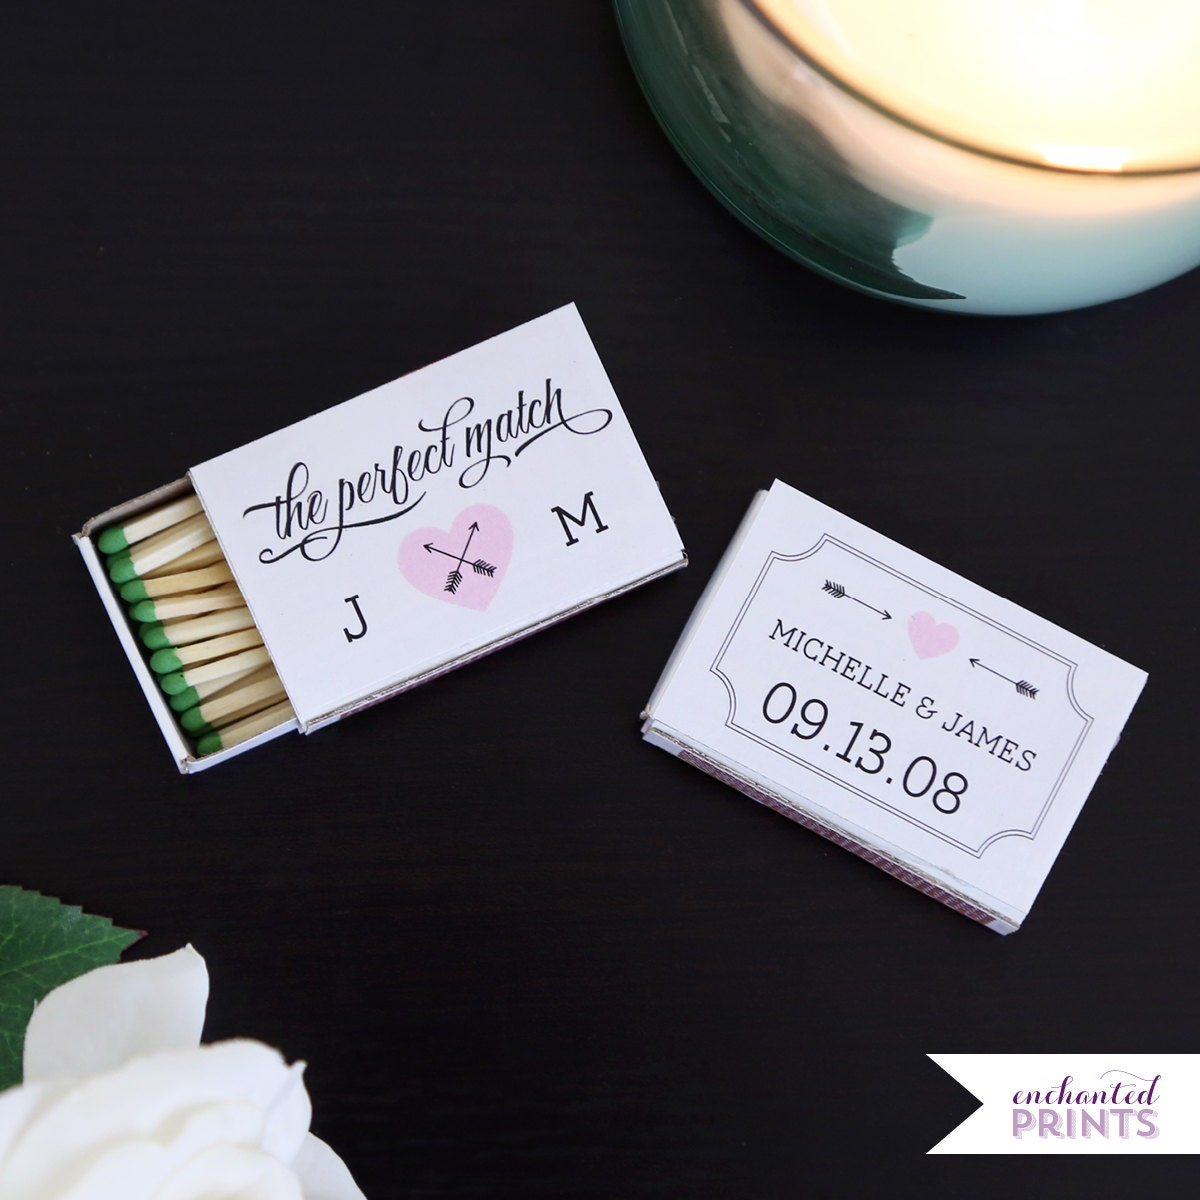 Wedding Personalized Matchbooks the perfect match personalized matchbox covers wedding favor